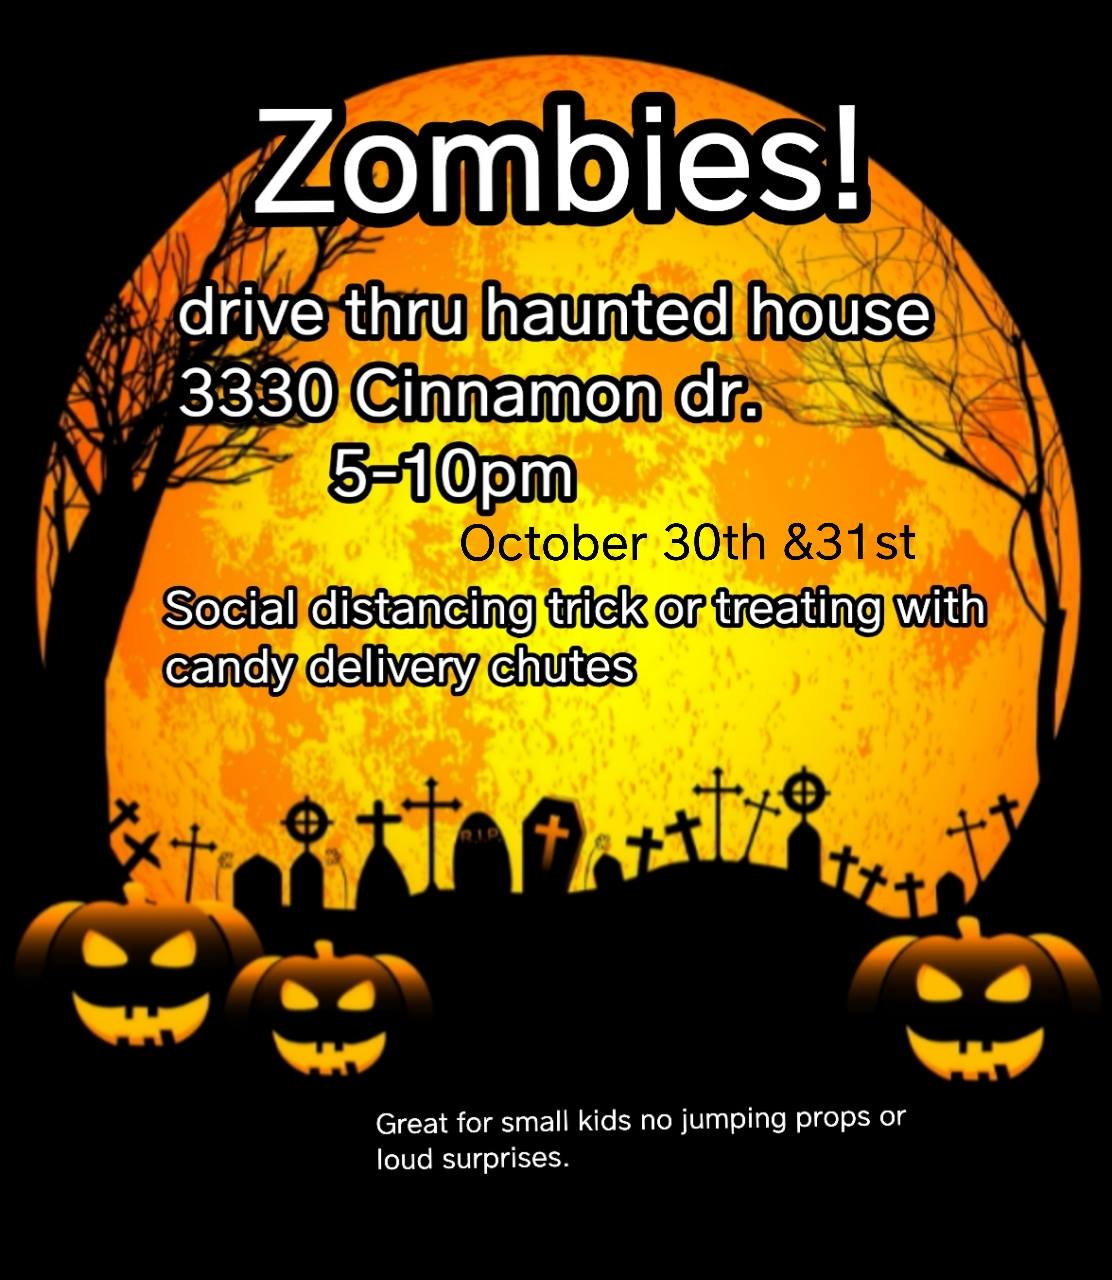 Zombie Drive Through Haunted House